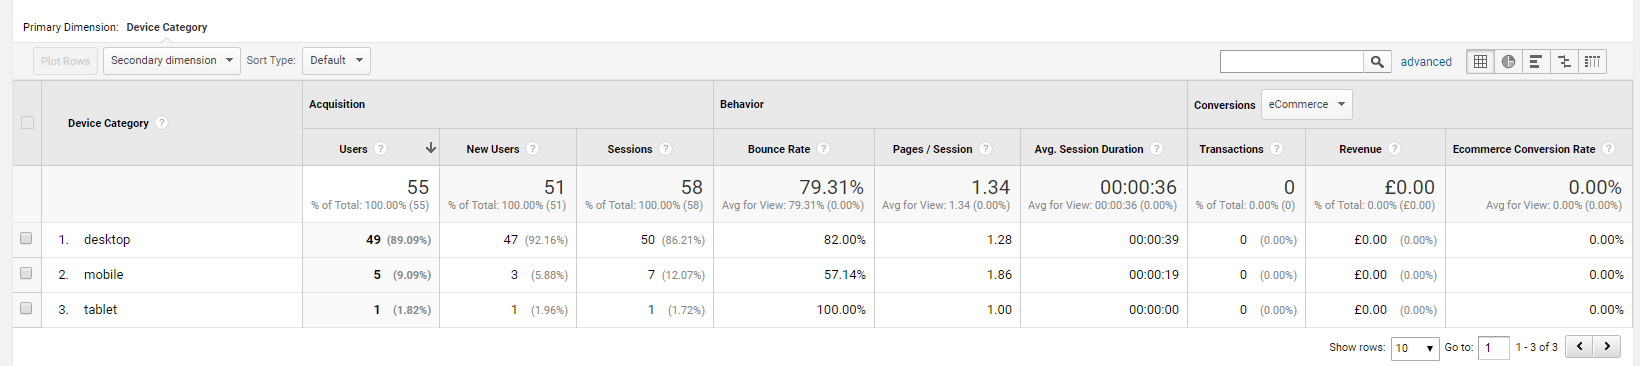 Google Analytics Device Report